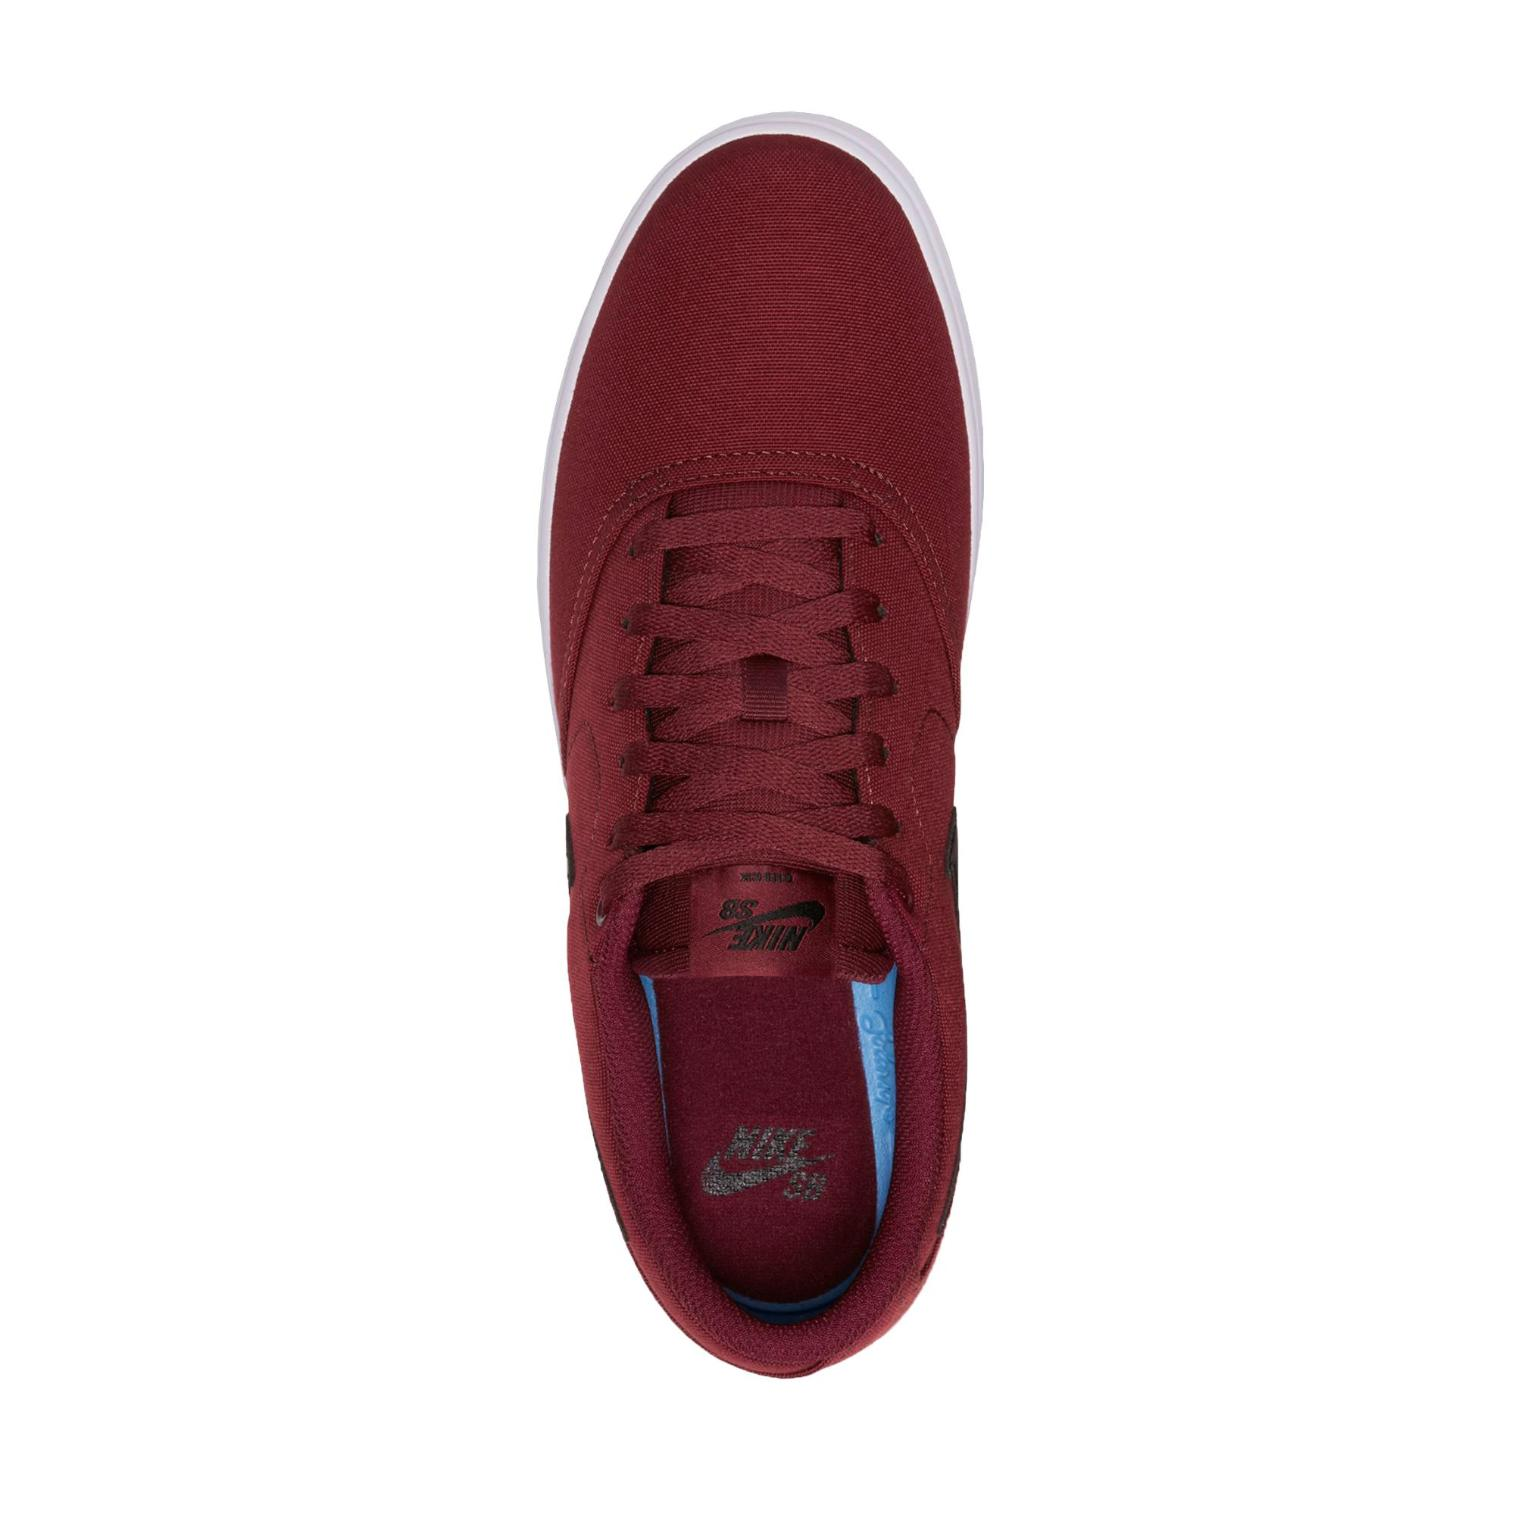 Nike SB Check in Solarsoft Sneaker in Check Farbe bordeaux günstig online kaufen 1762be